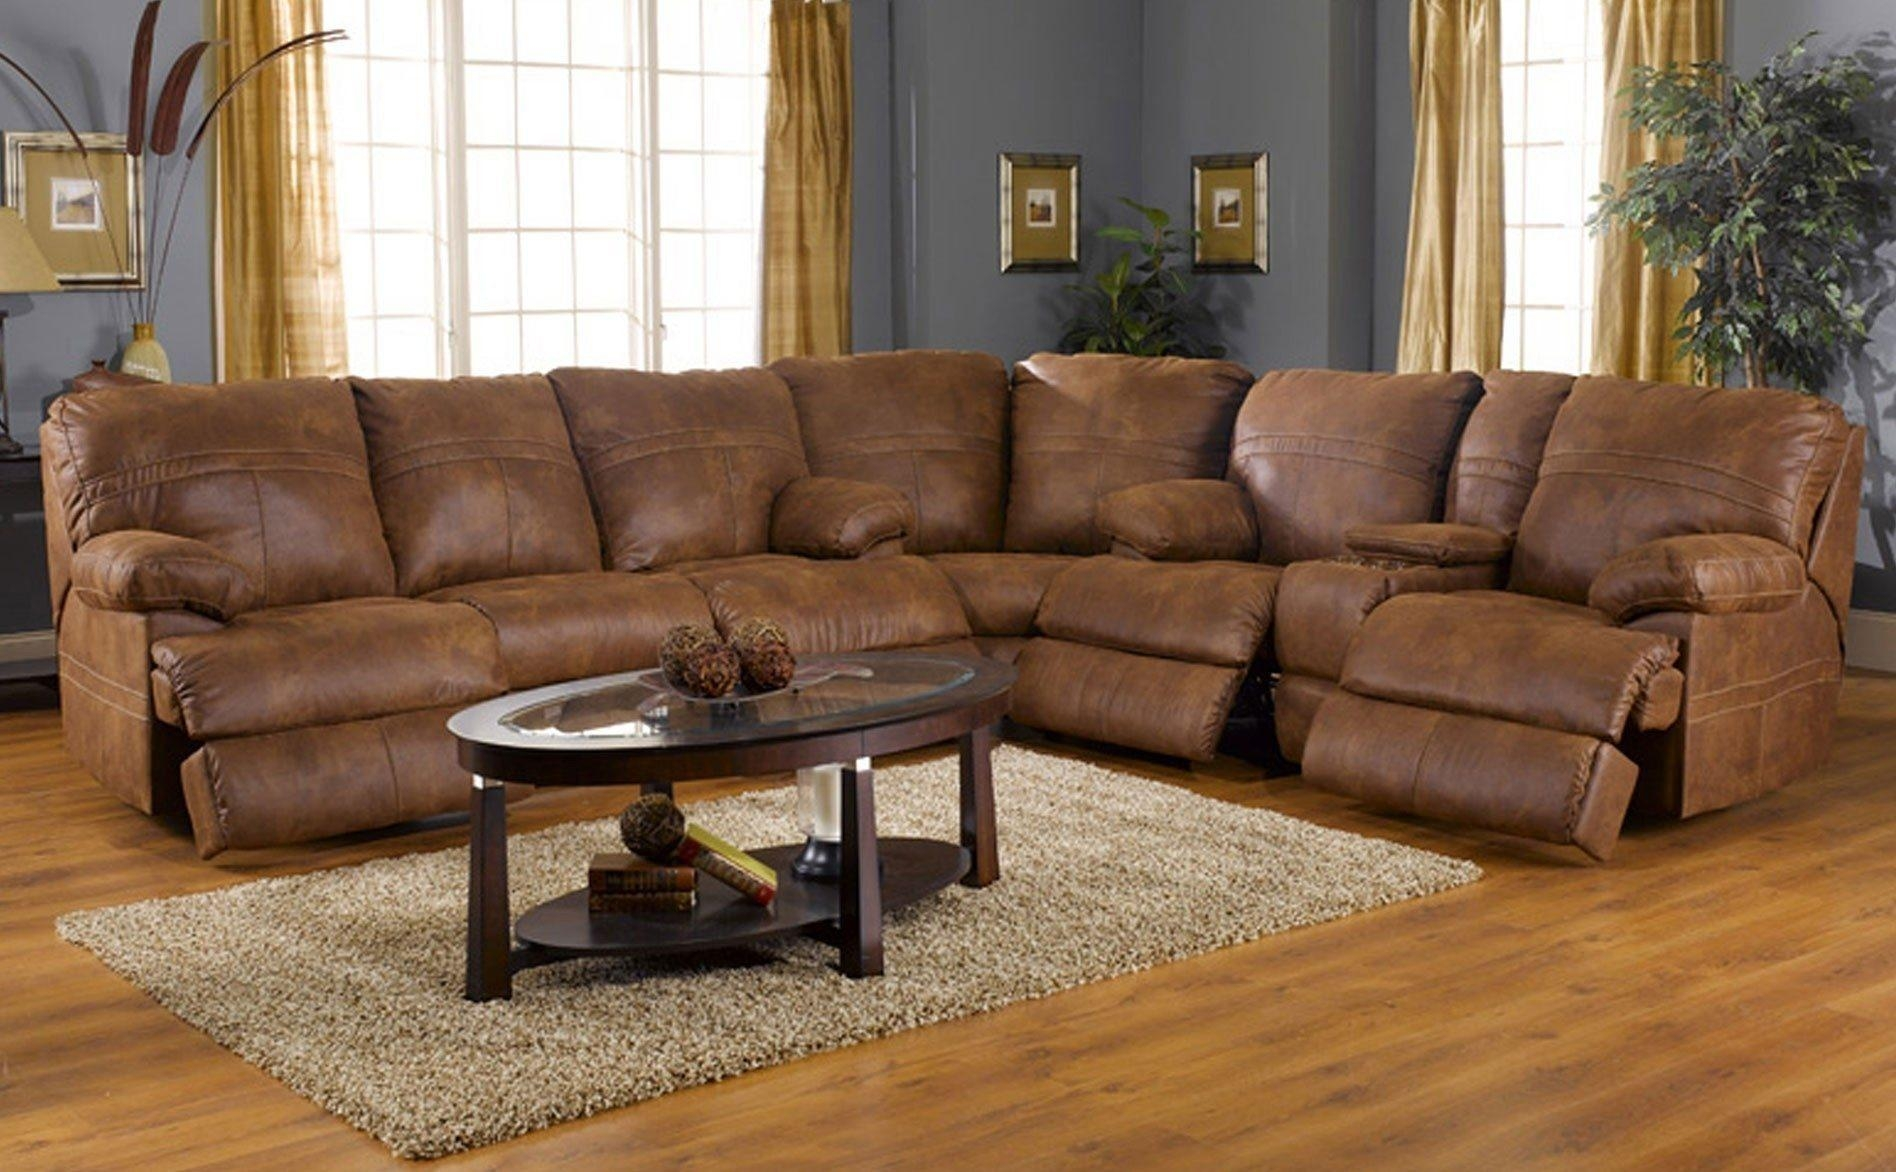 Sofa Ideas 3 Piece Sectional Sofa Slipcovers Explore 20 of 20